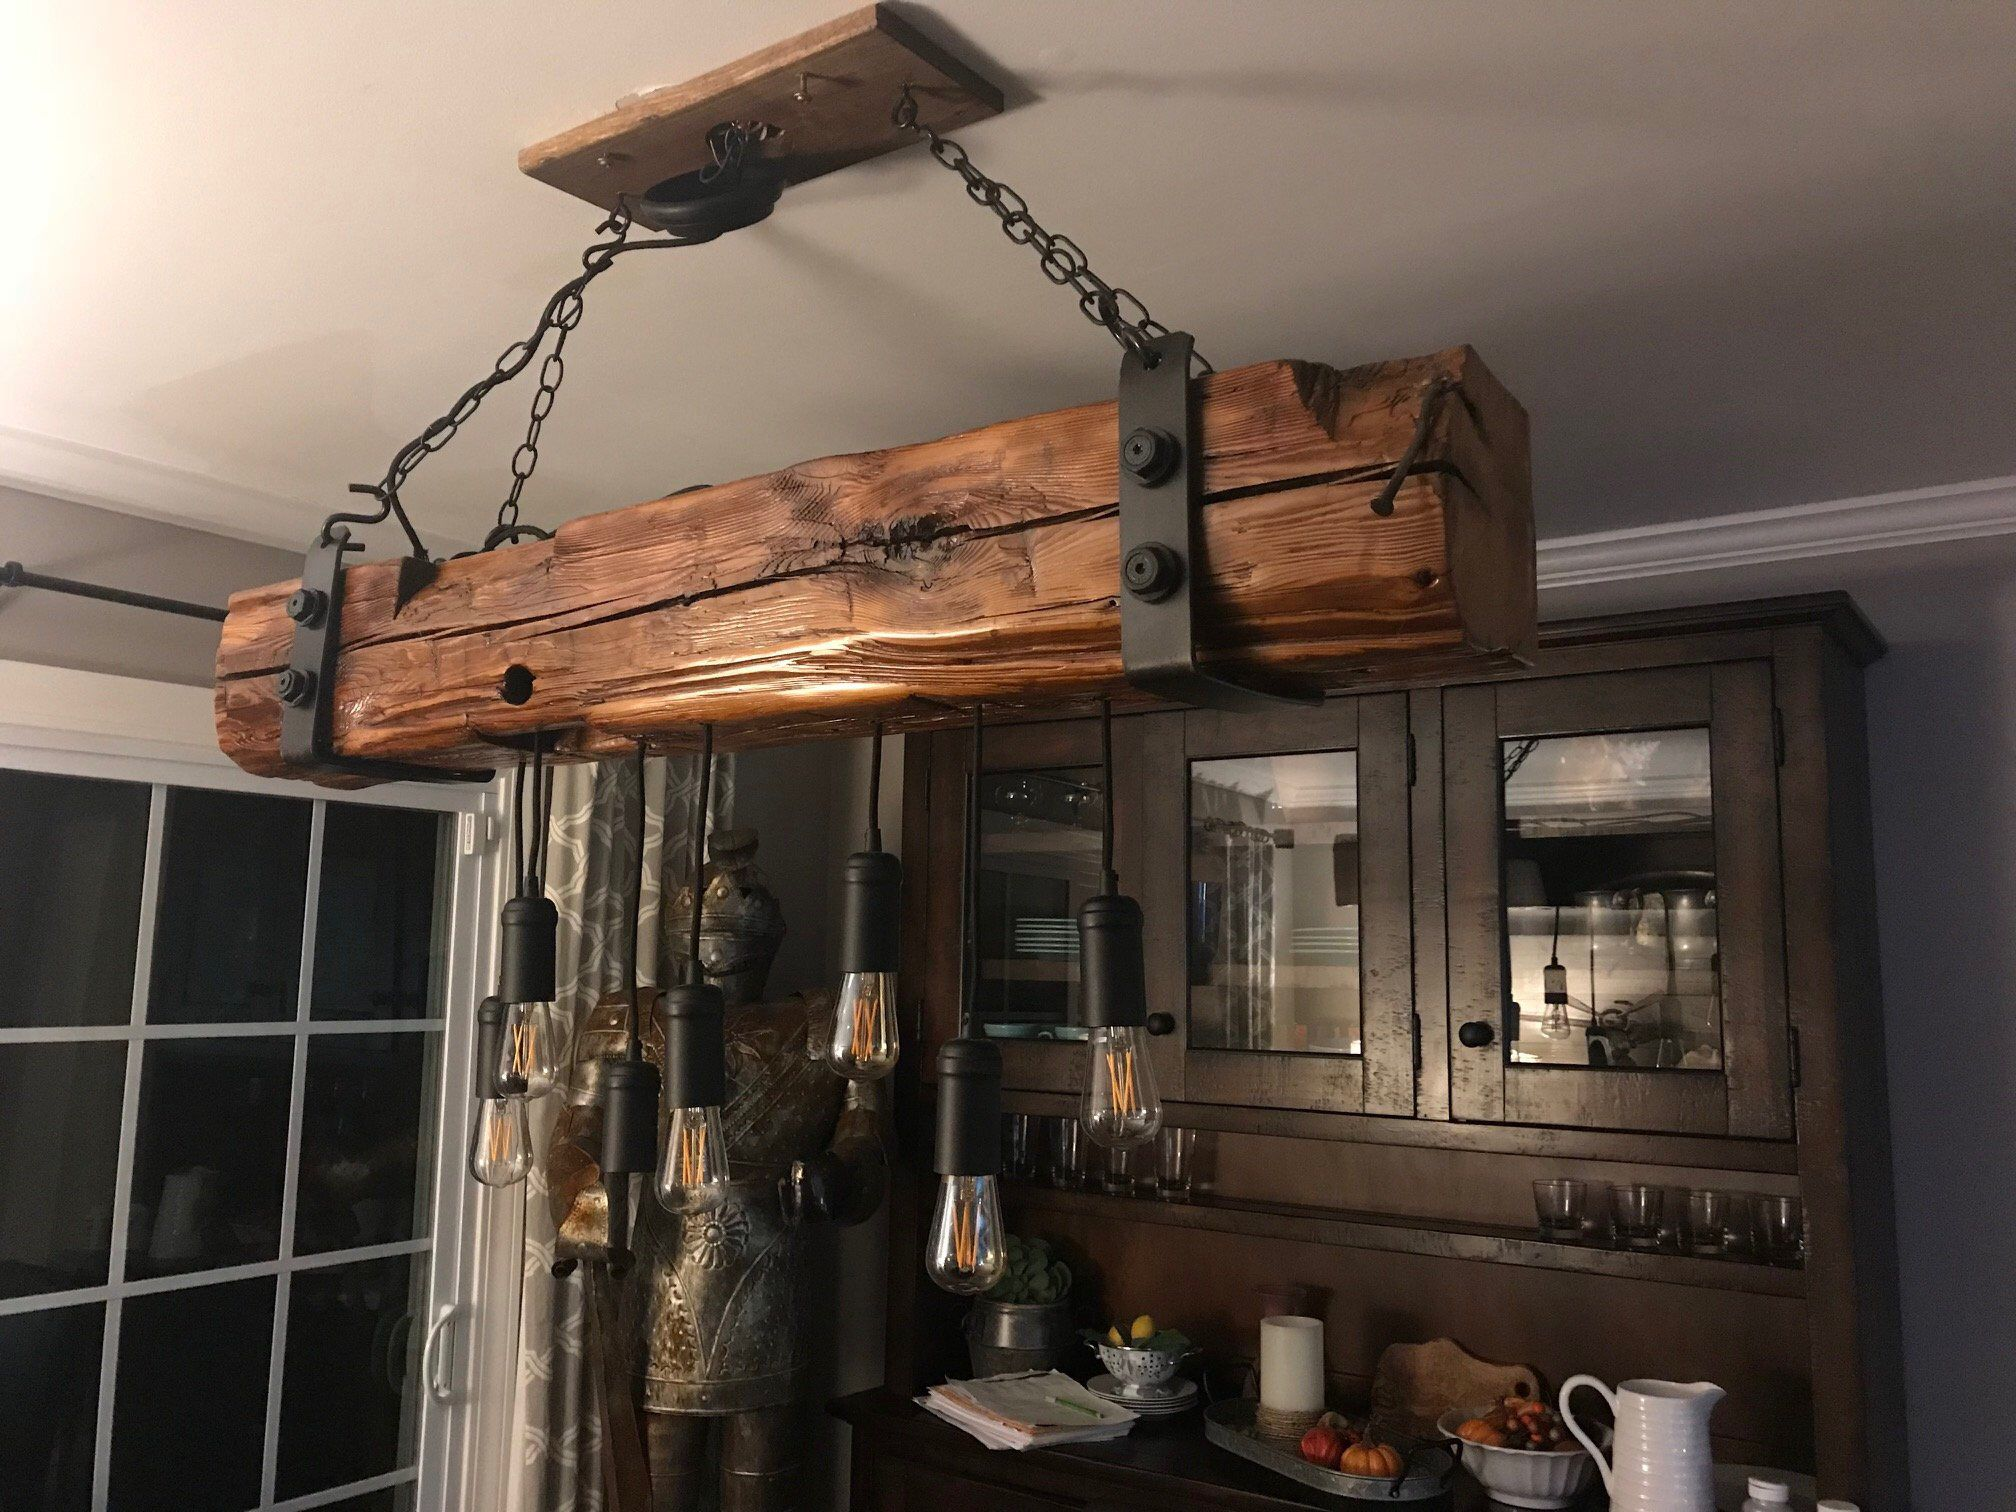 4 Foot Reclaimed Barn Wood Beam Light Fixture In 2019 My